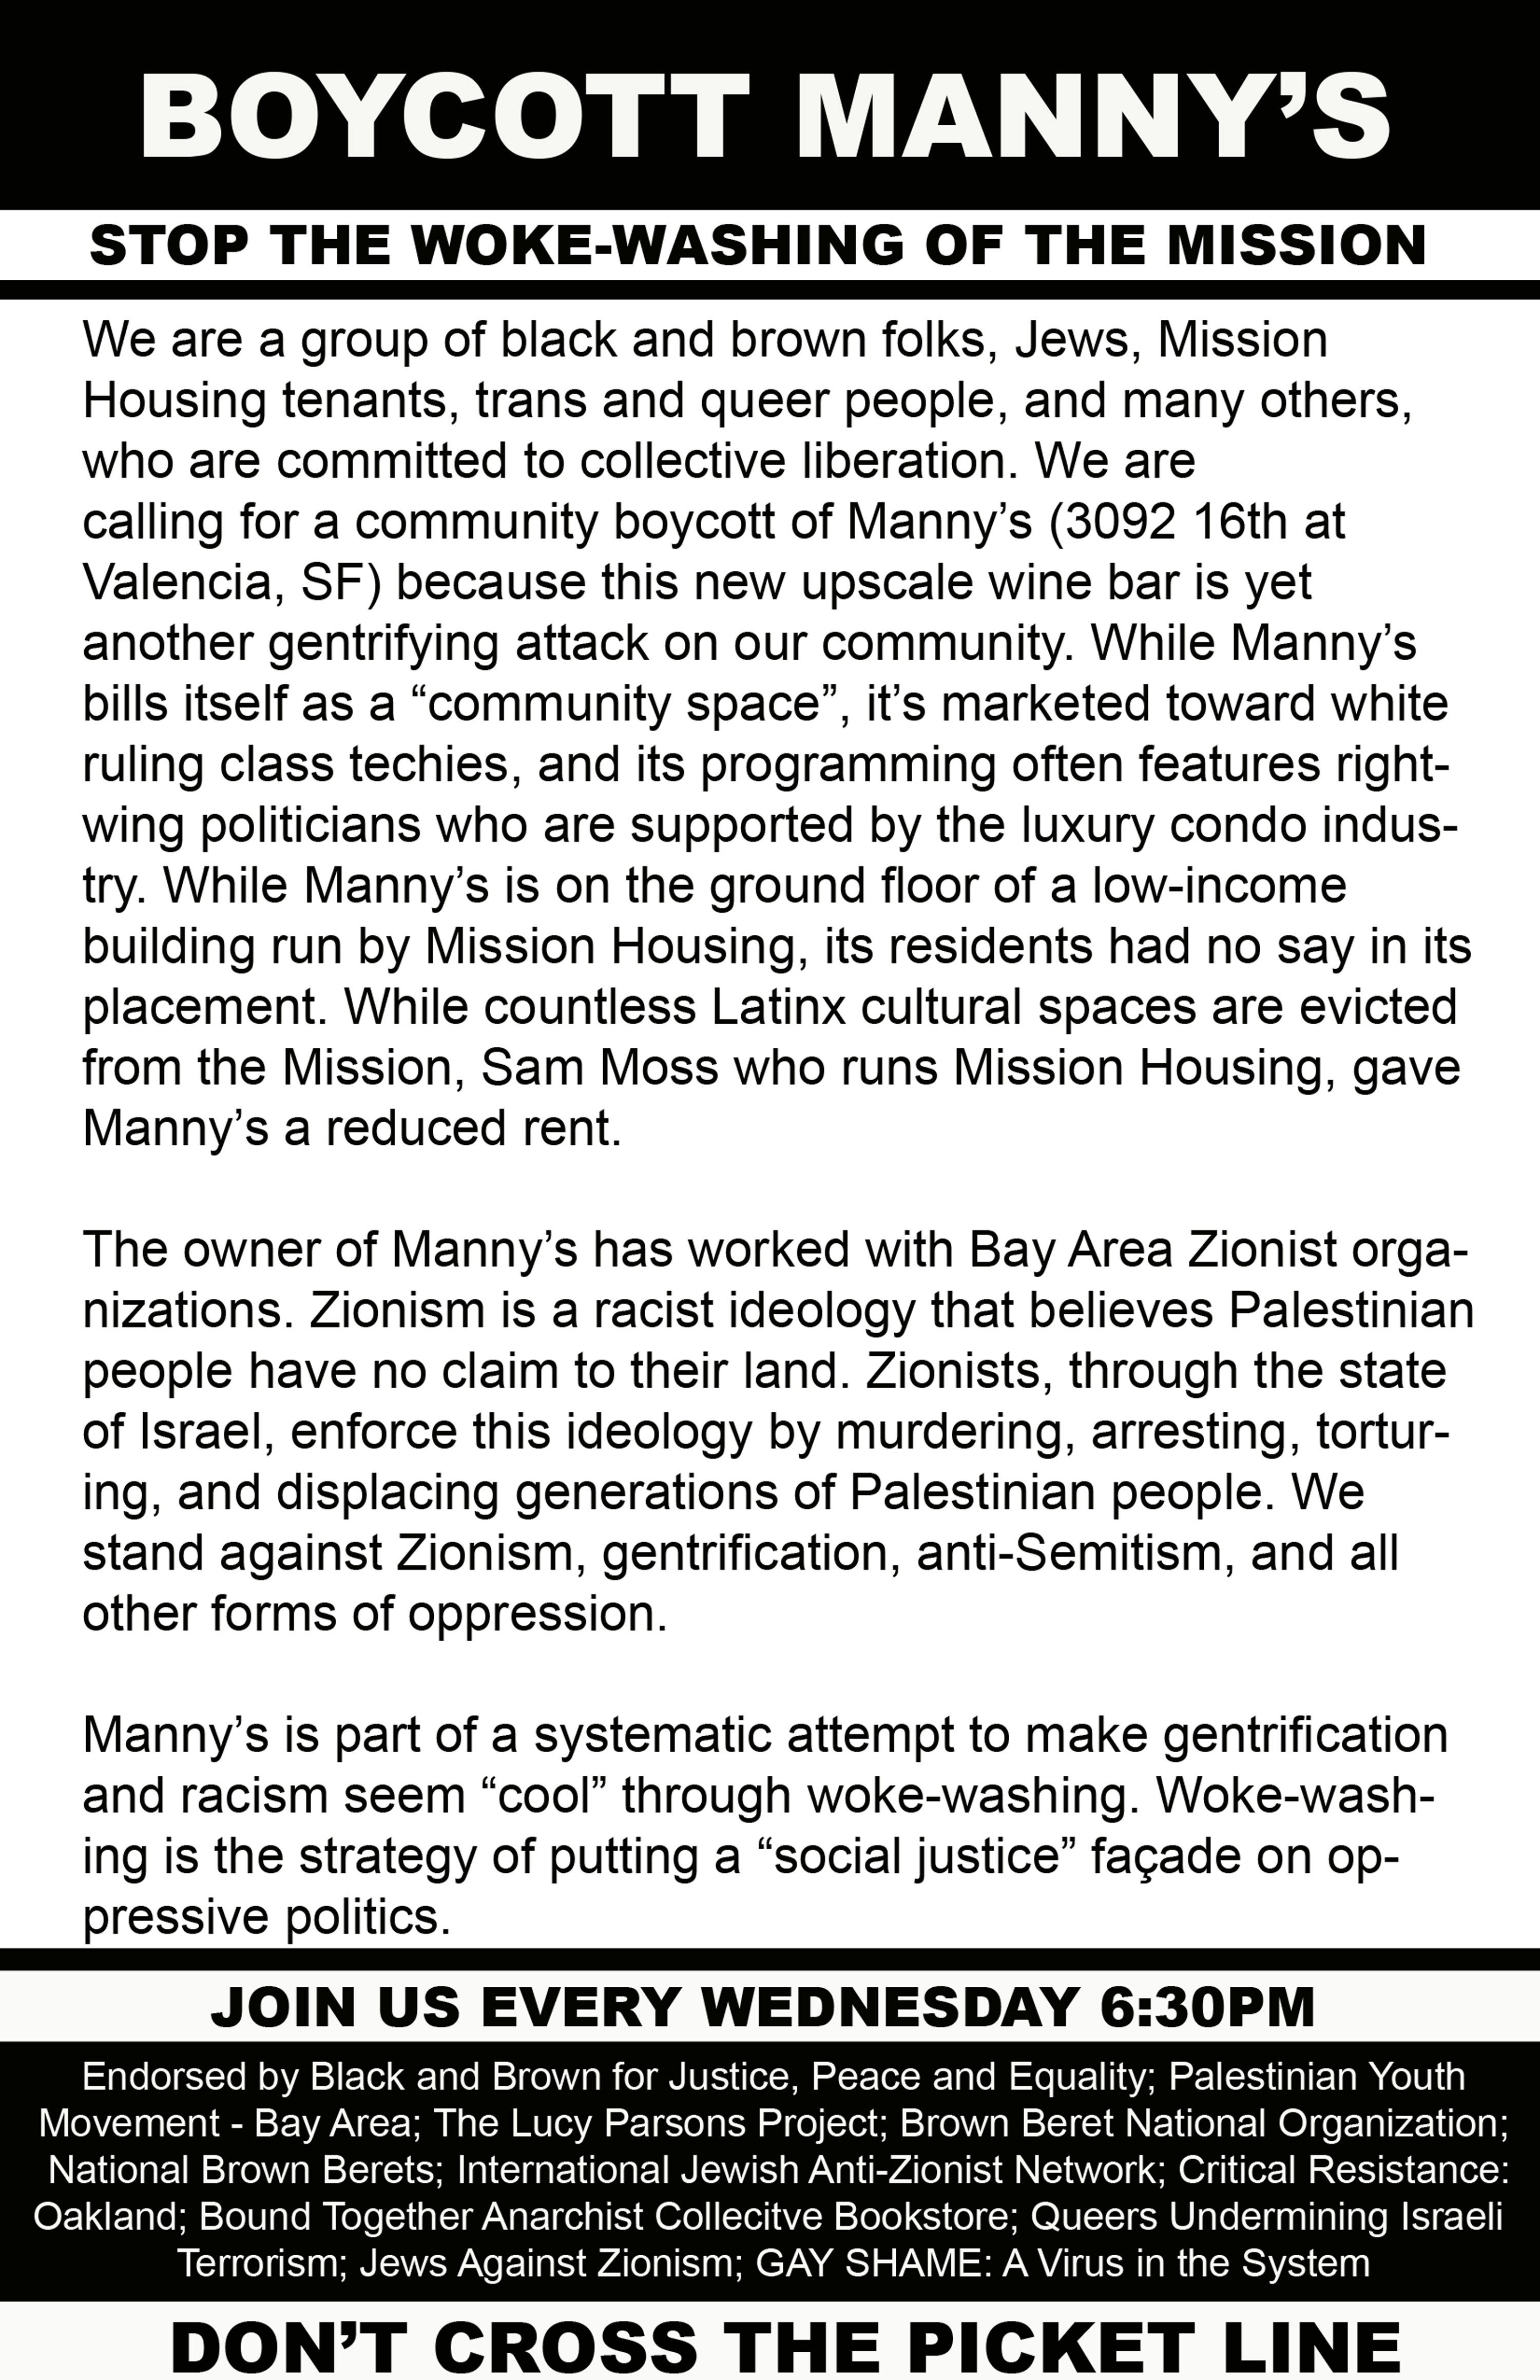 BOYCOTT MANNY'S 